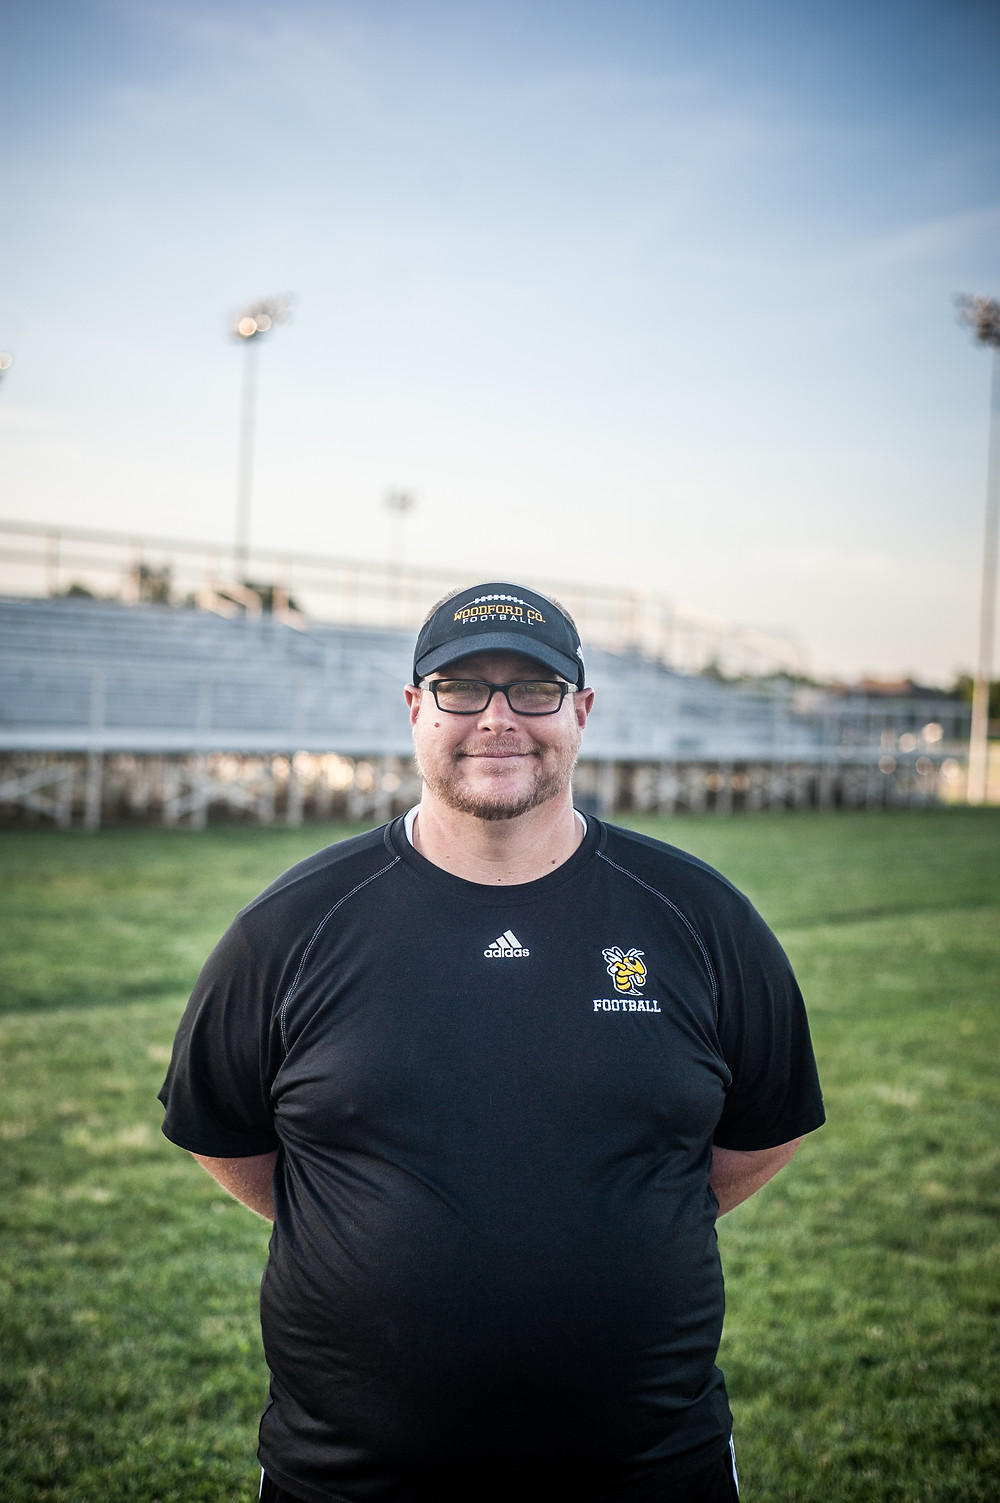 DAVE THOMAS, who lives in Versailles, is the new head coach of the Woodford County Middle School football team. (Photo by Bill Caine)